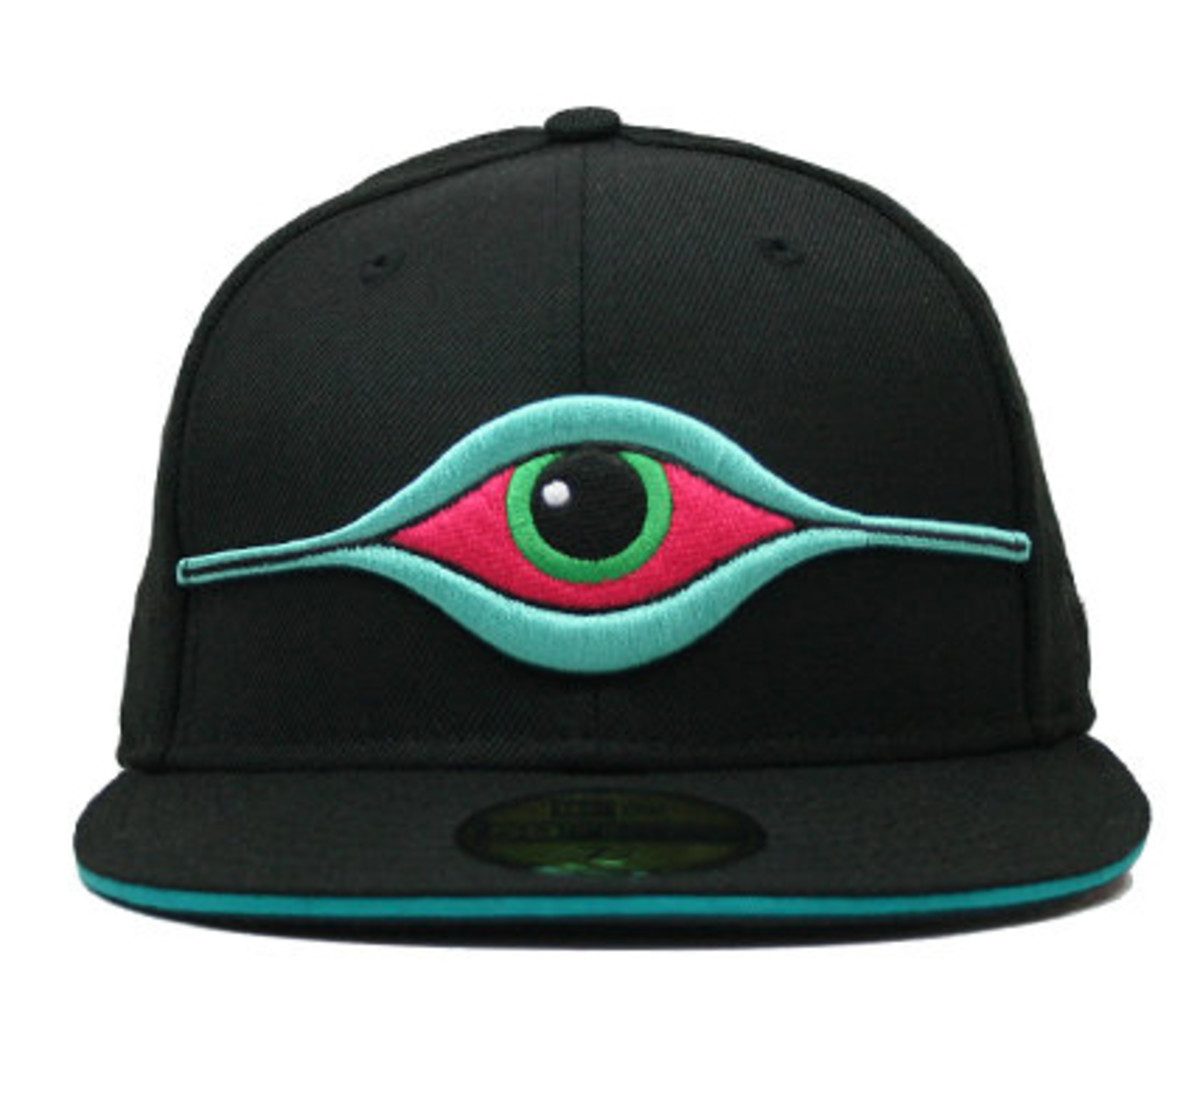 Mishka x New Era - New Fitted Cap Collection - Gawk Fitted